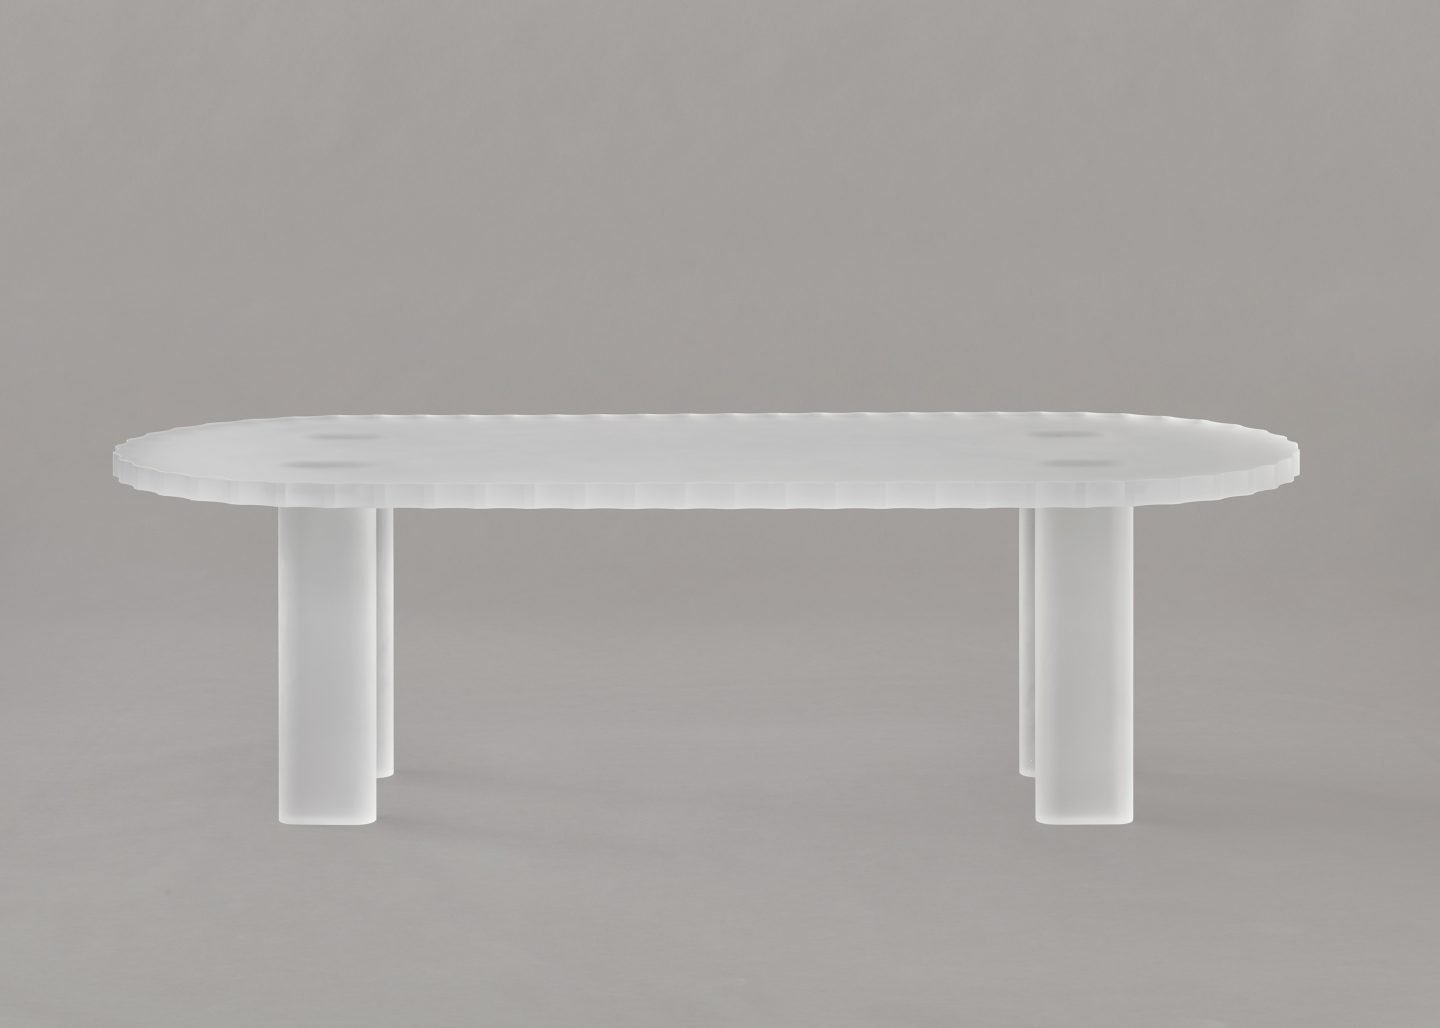 IGNANT-Design-Balzano-Antica-DiningTable-1